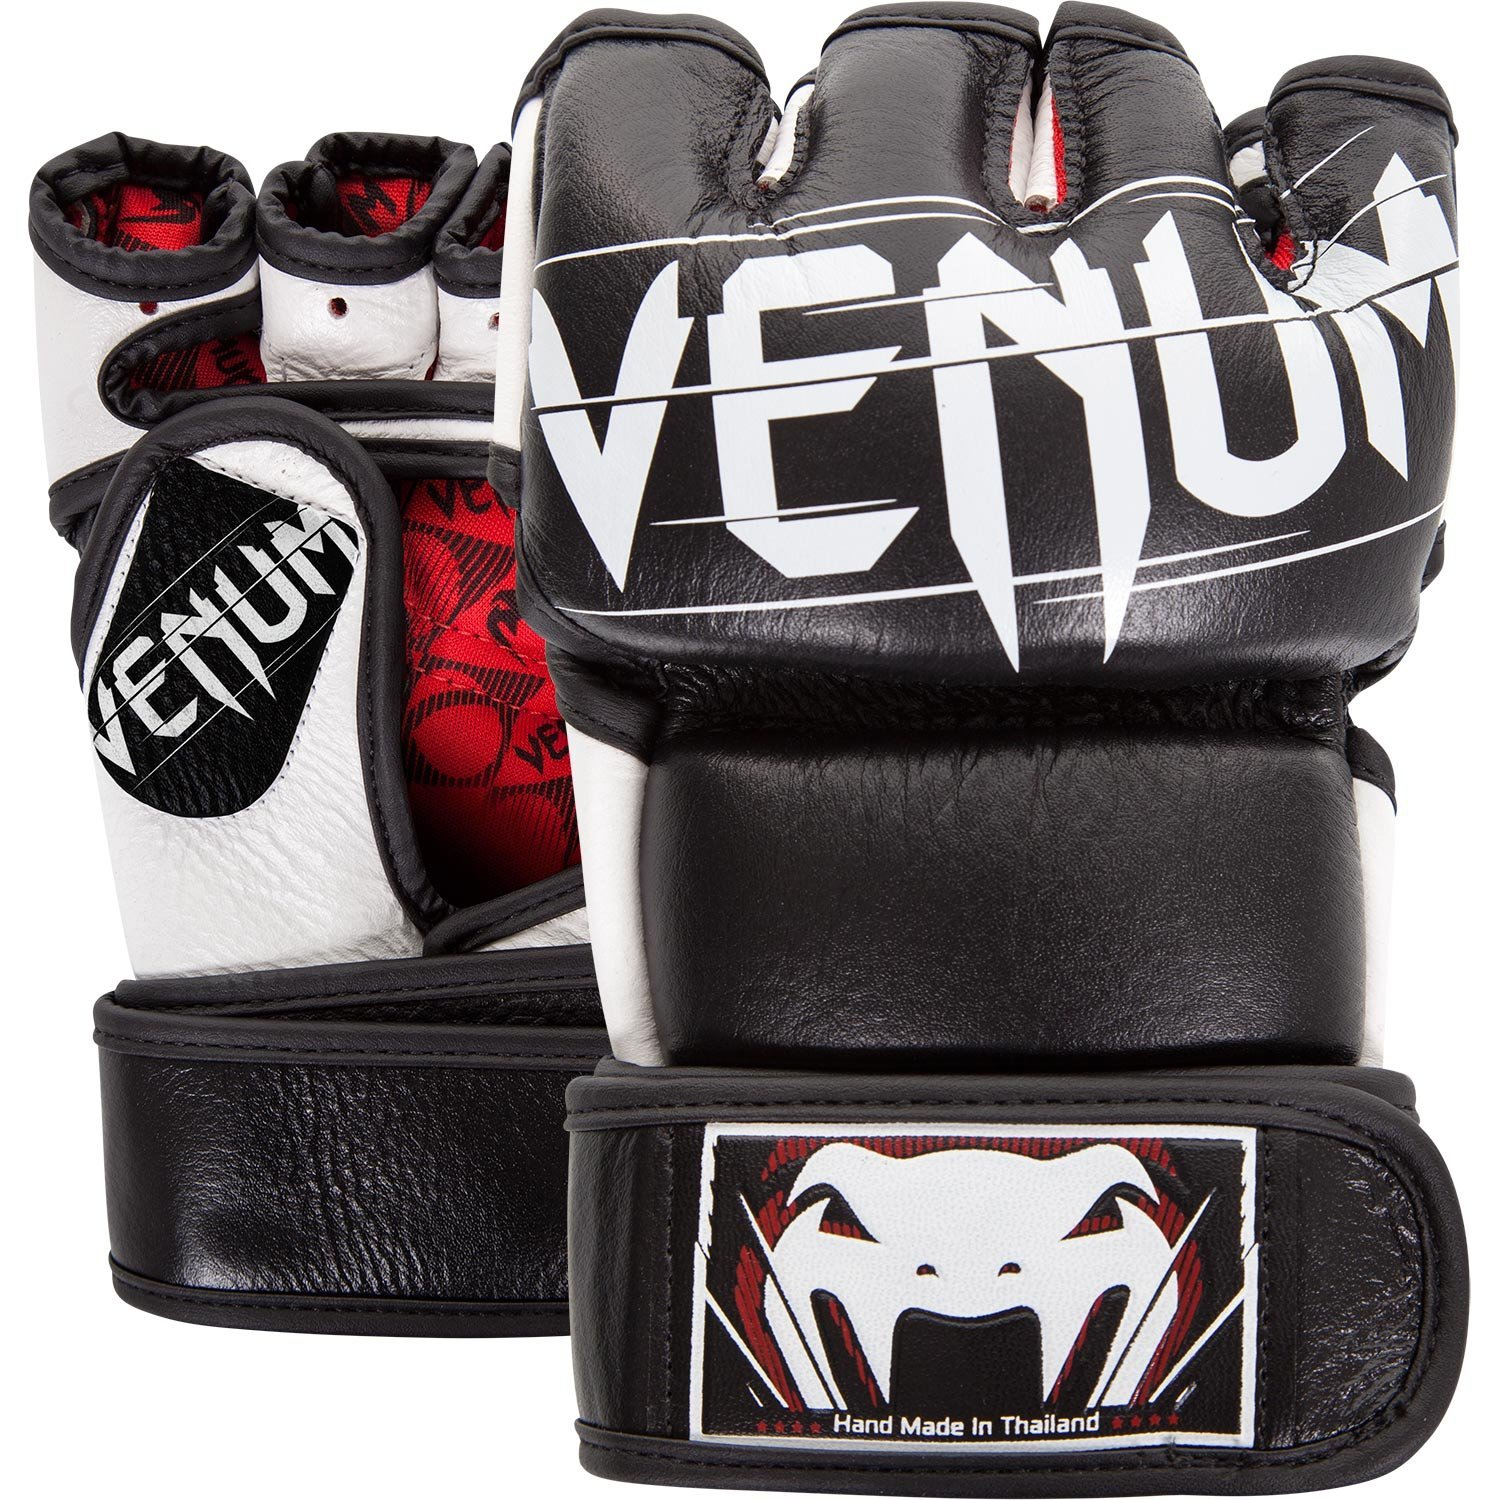 Venum Undisputed 2.0 MMA Gloves, Medium, Black